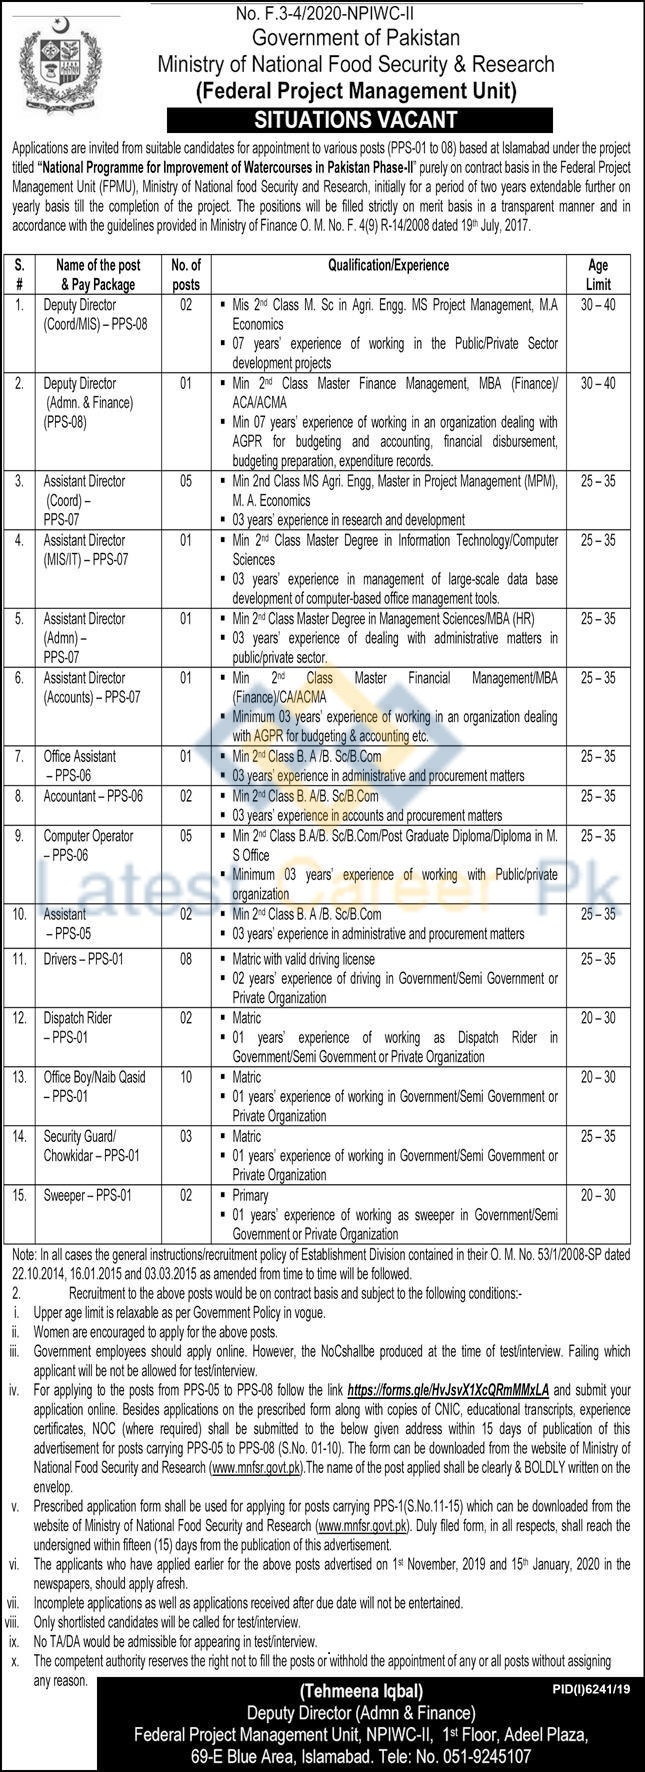 Ministry-of-National-Food-Security-and-Research-MNFSR-Lahore-Jobs-21-May-2020